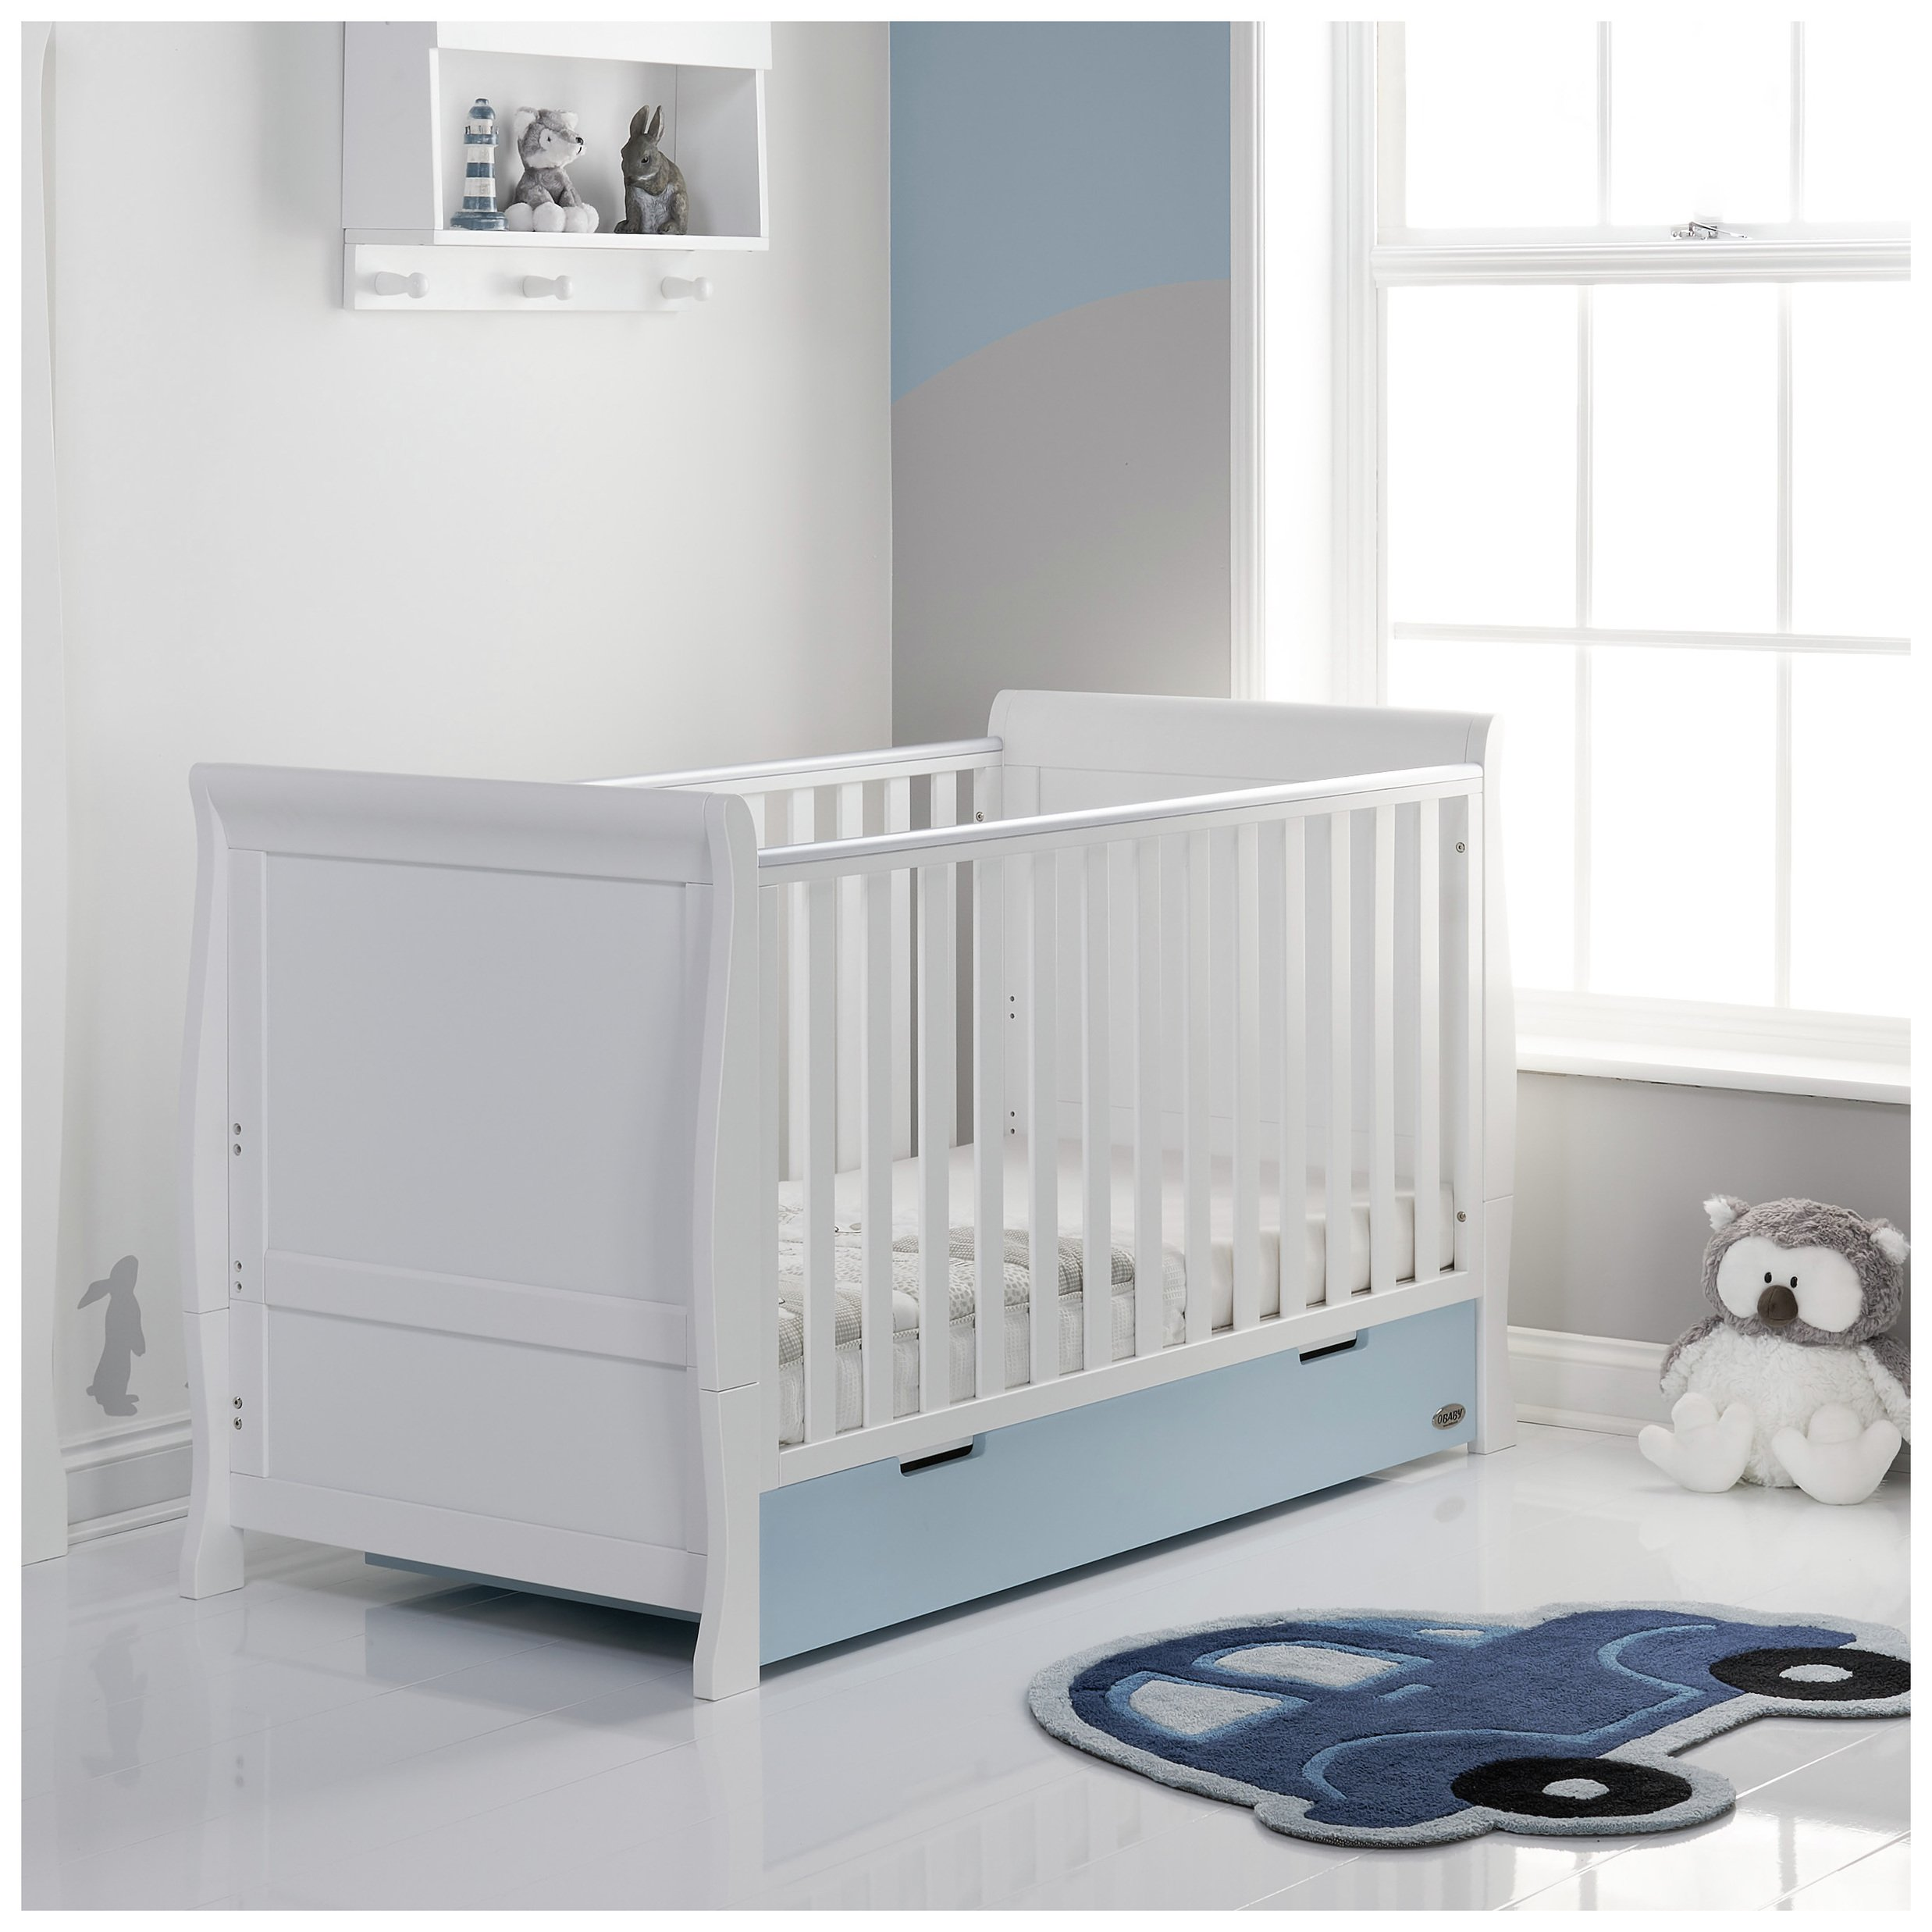 Obaby Stamford Classic Sleigh Cot Bed - White & Bonbon Blue